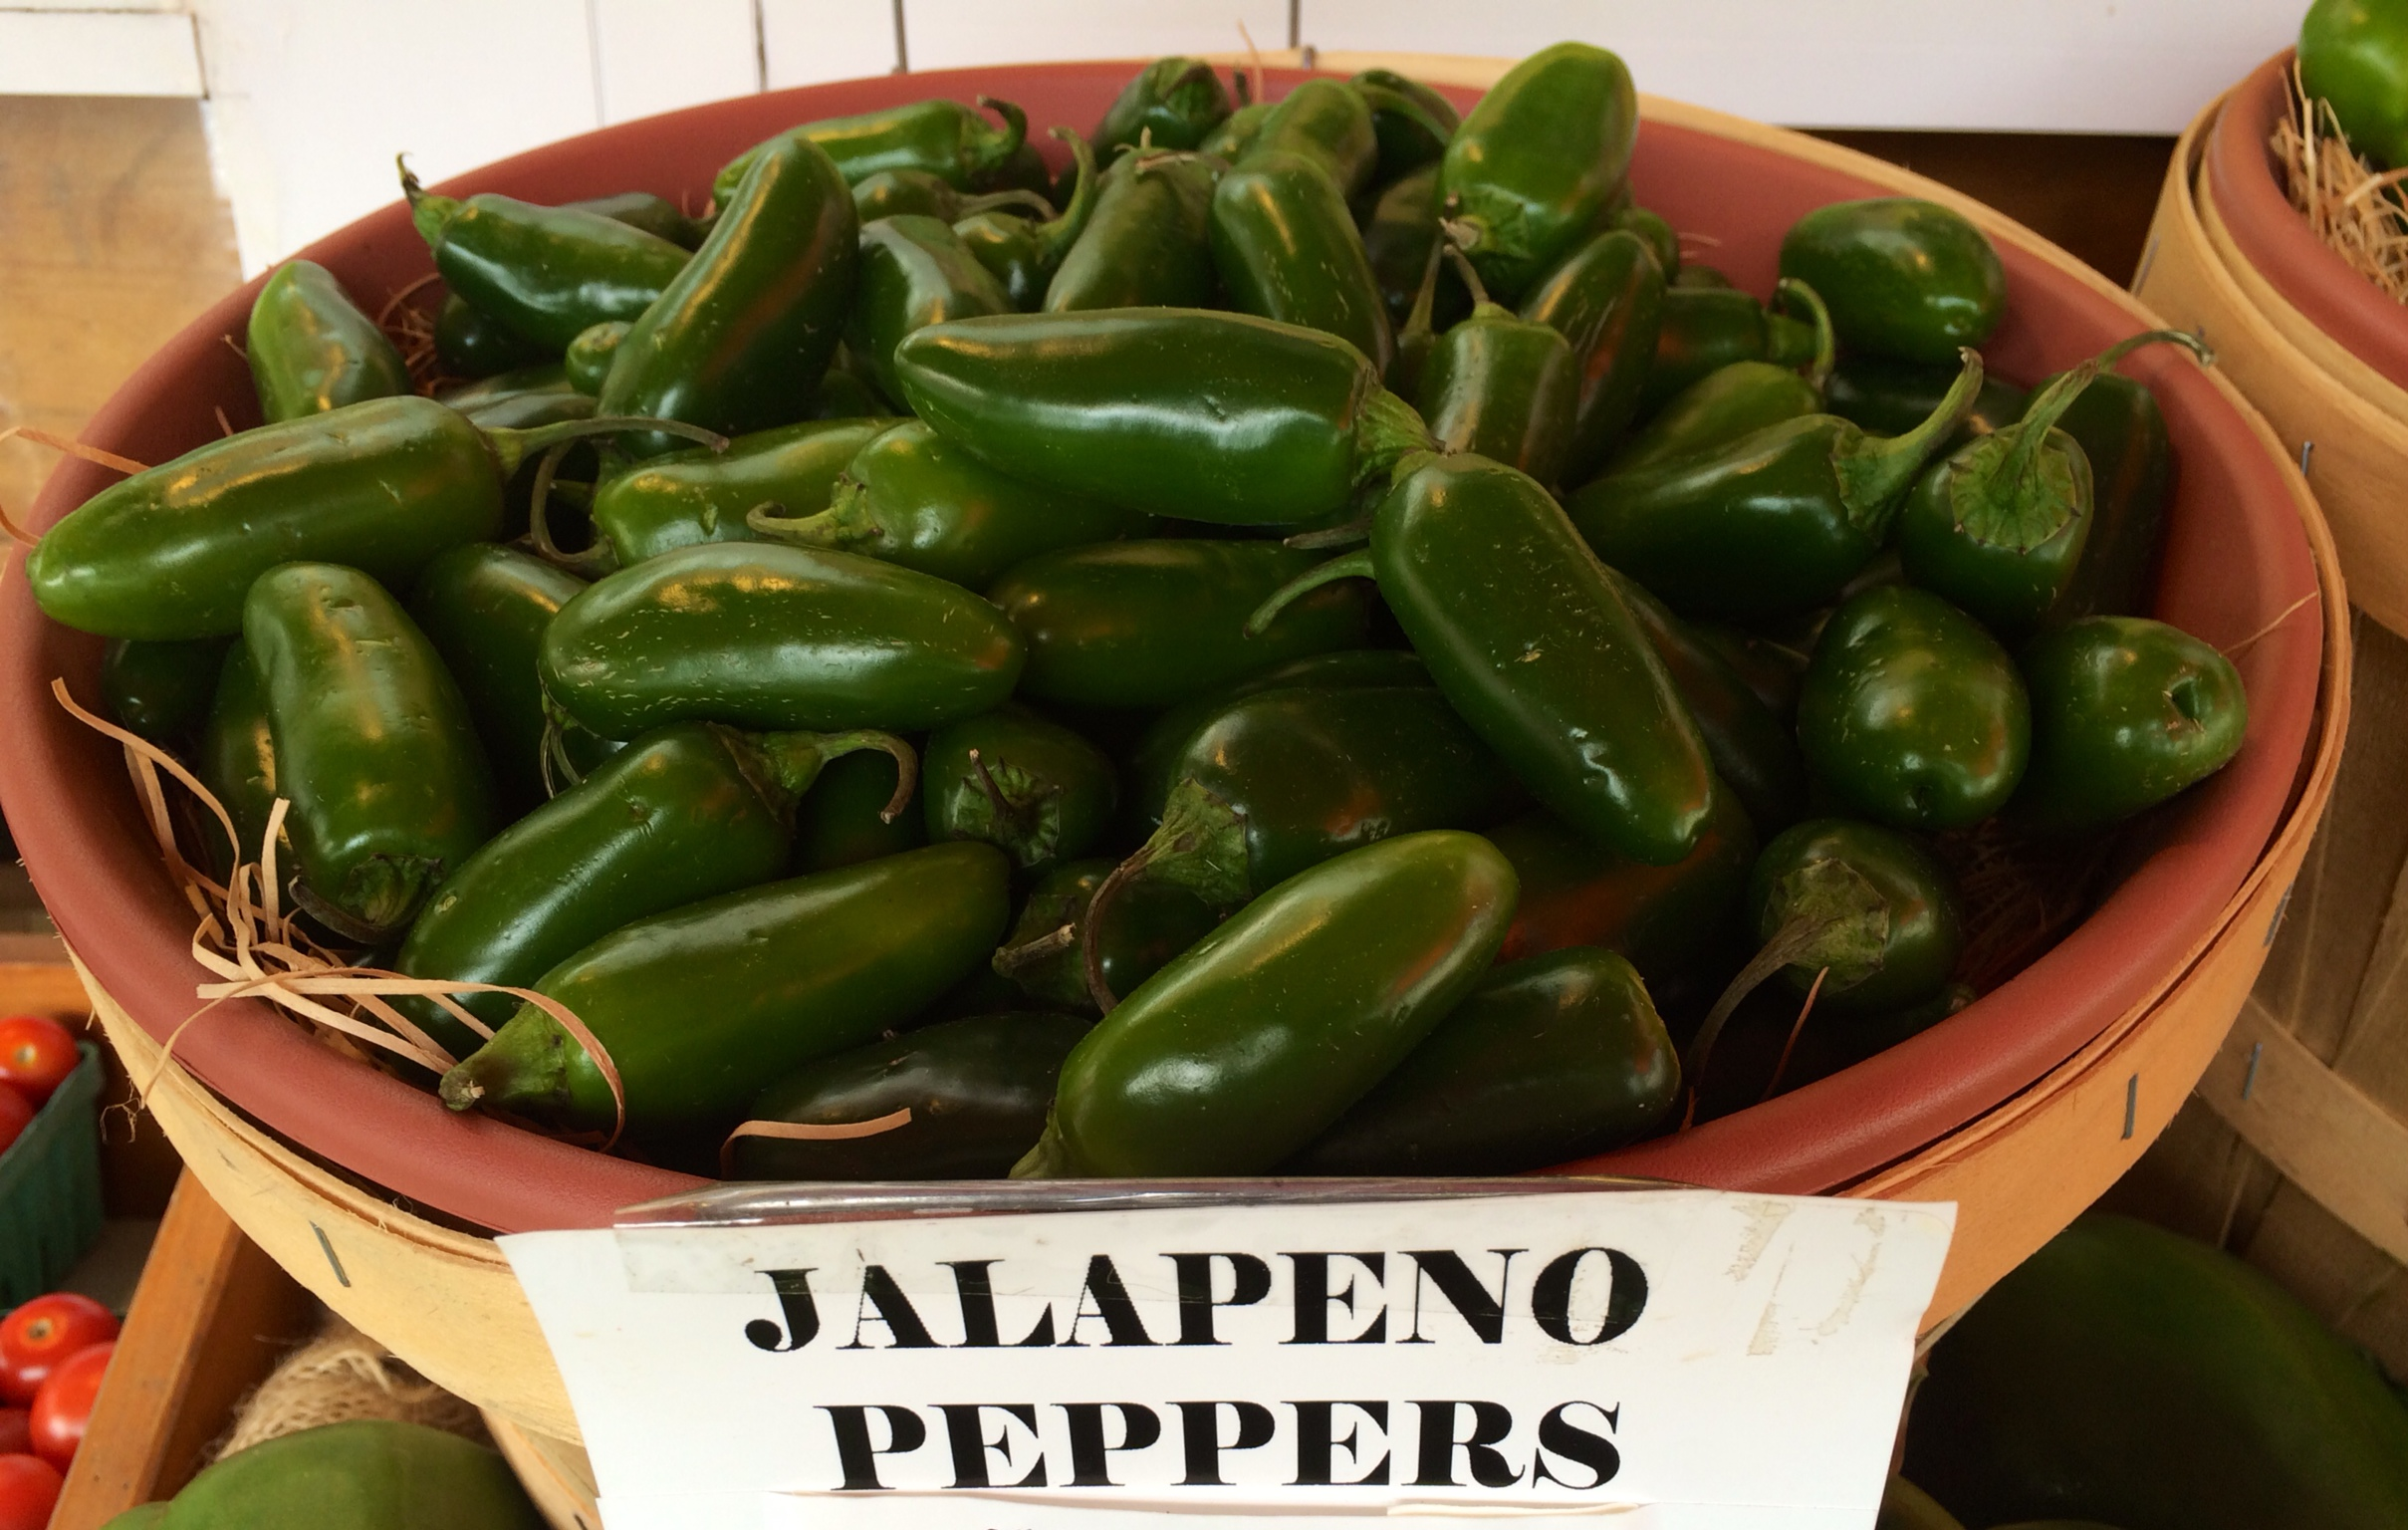 bin of jalapeno peppers